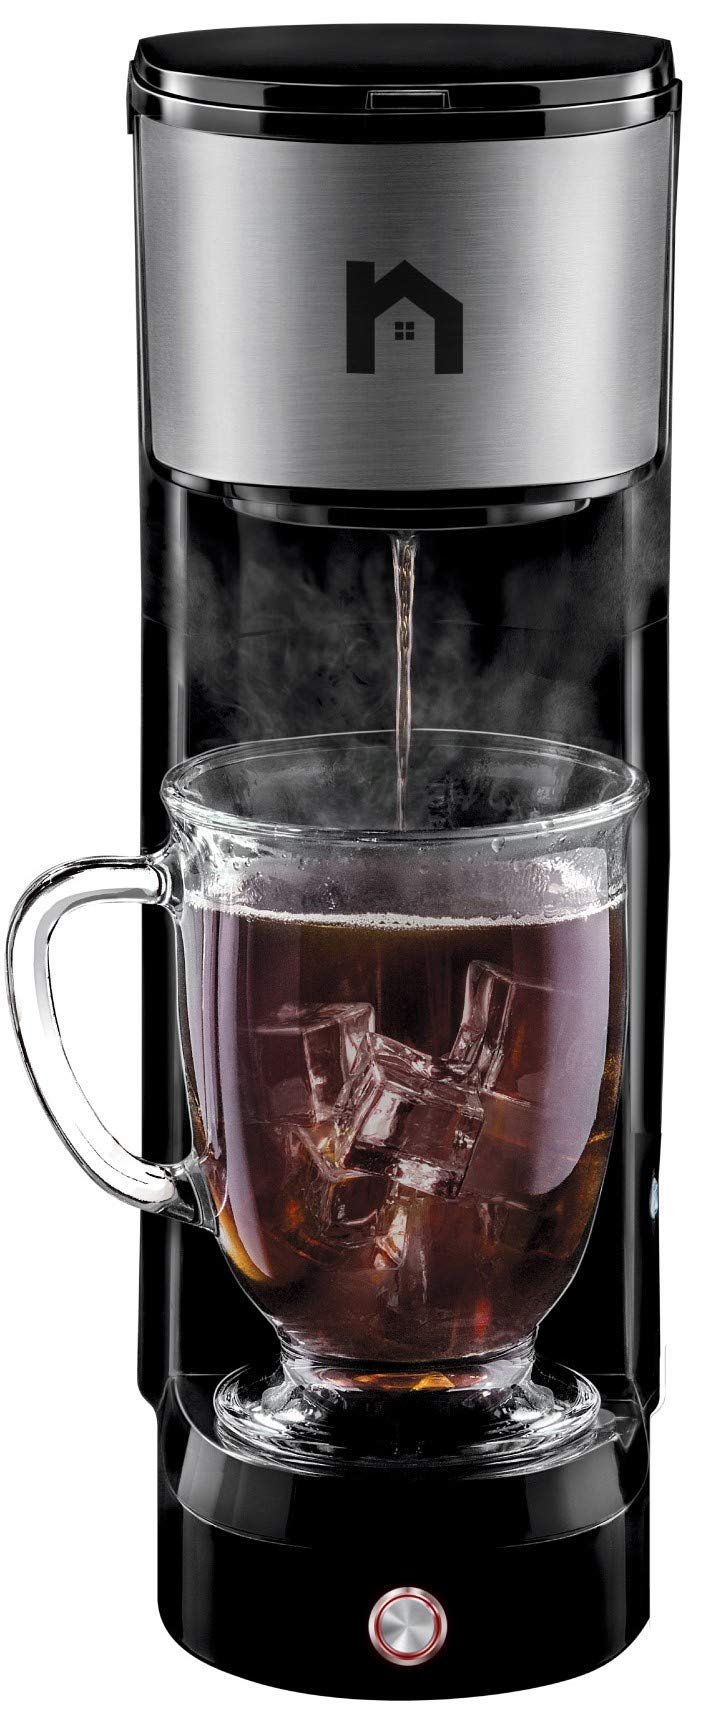 New House Kitchen Maker K-Cup Pod Brewer Instant Reboil Single Serve, Free Filter For Use with Grounds, Coffee on Command, Mug NOT Included – Compact,